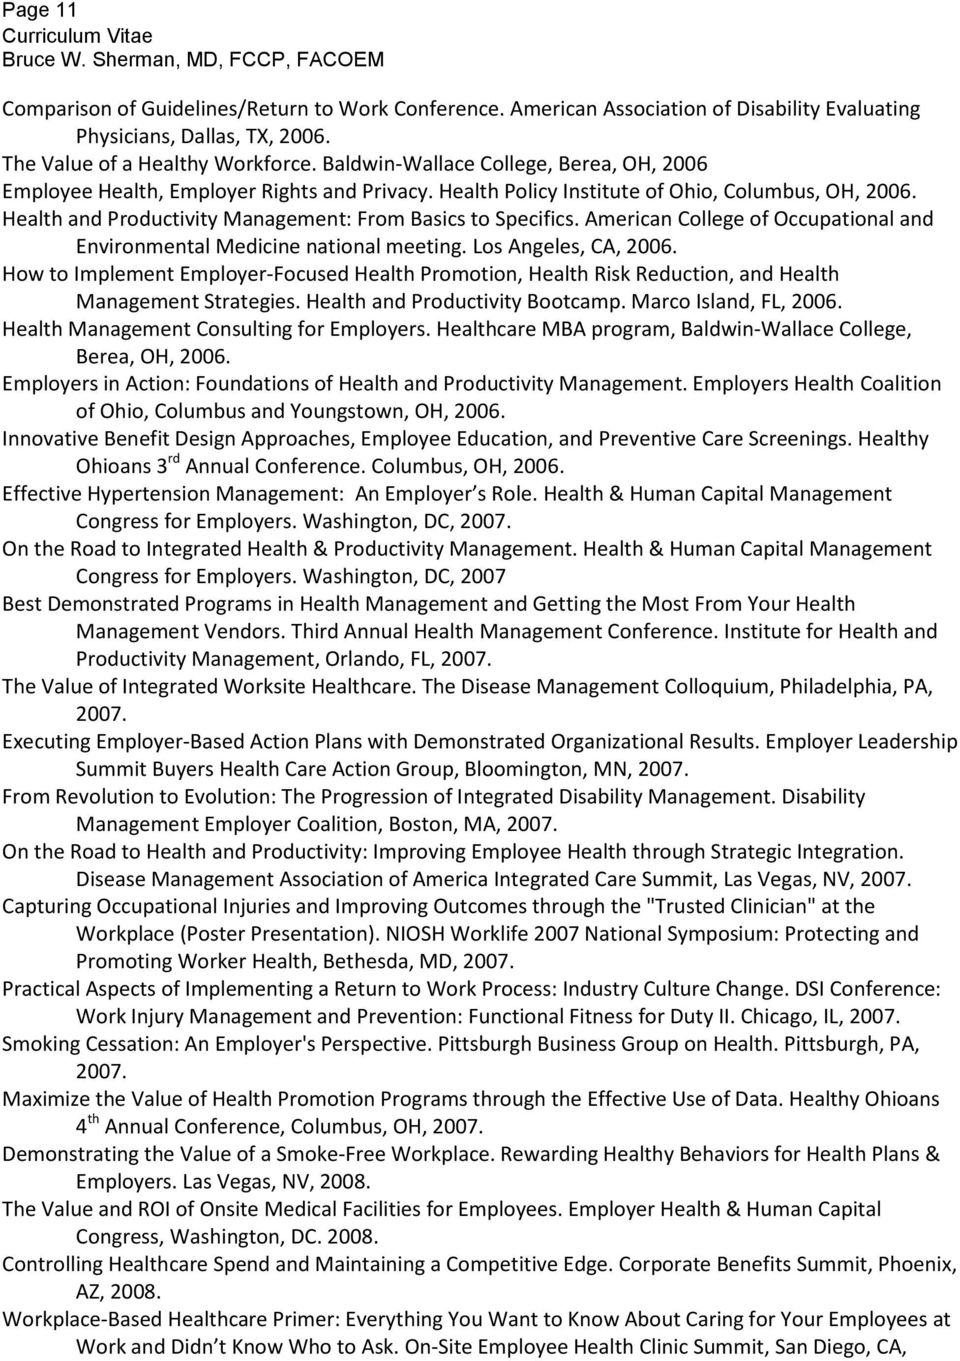 Health and Productivity Management: From Basics to Specifics. American College of Occupational and Environmental Medicine national meeting. Los Angeles, CA, 2006.